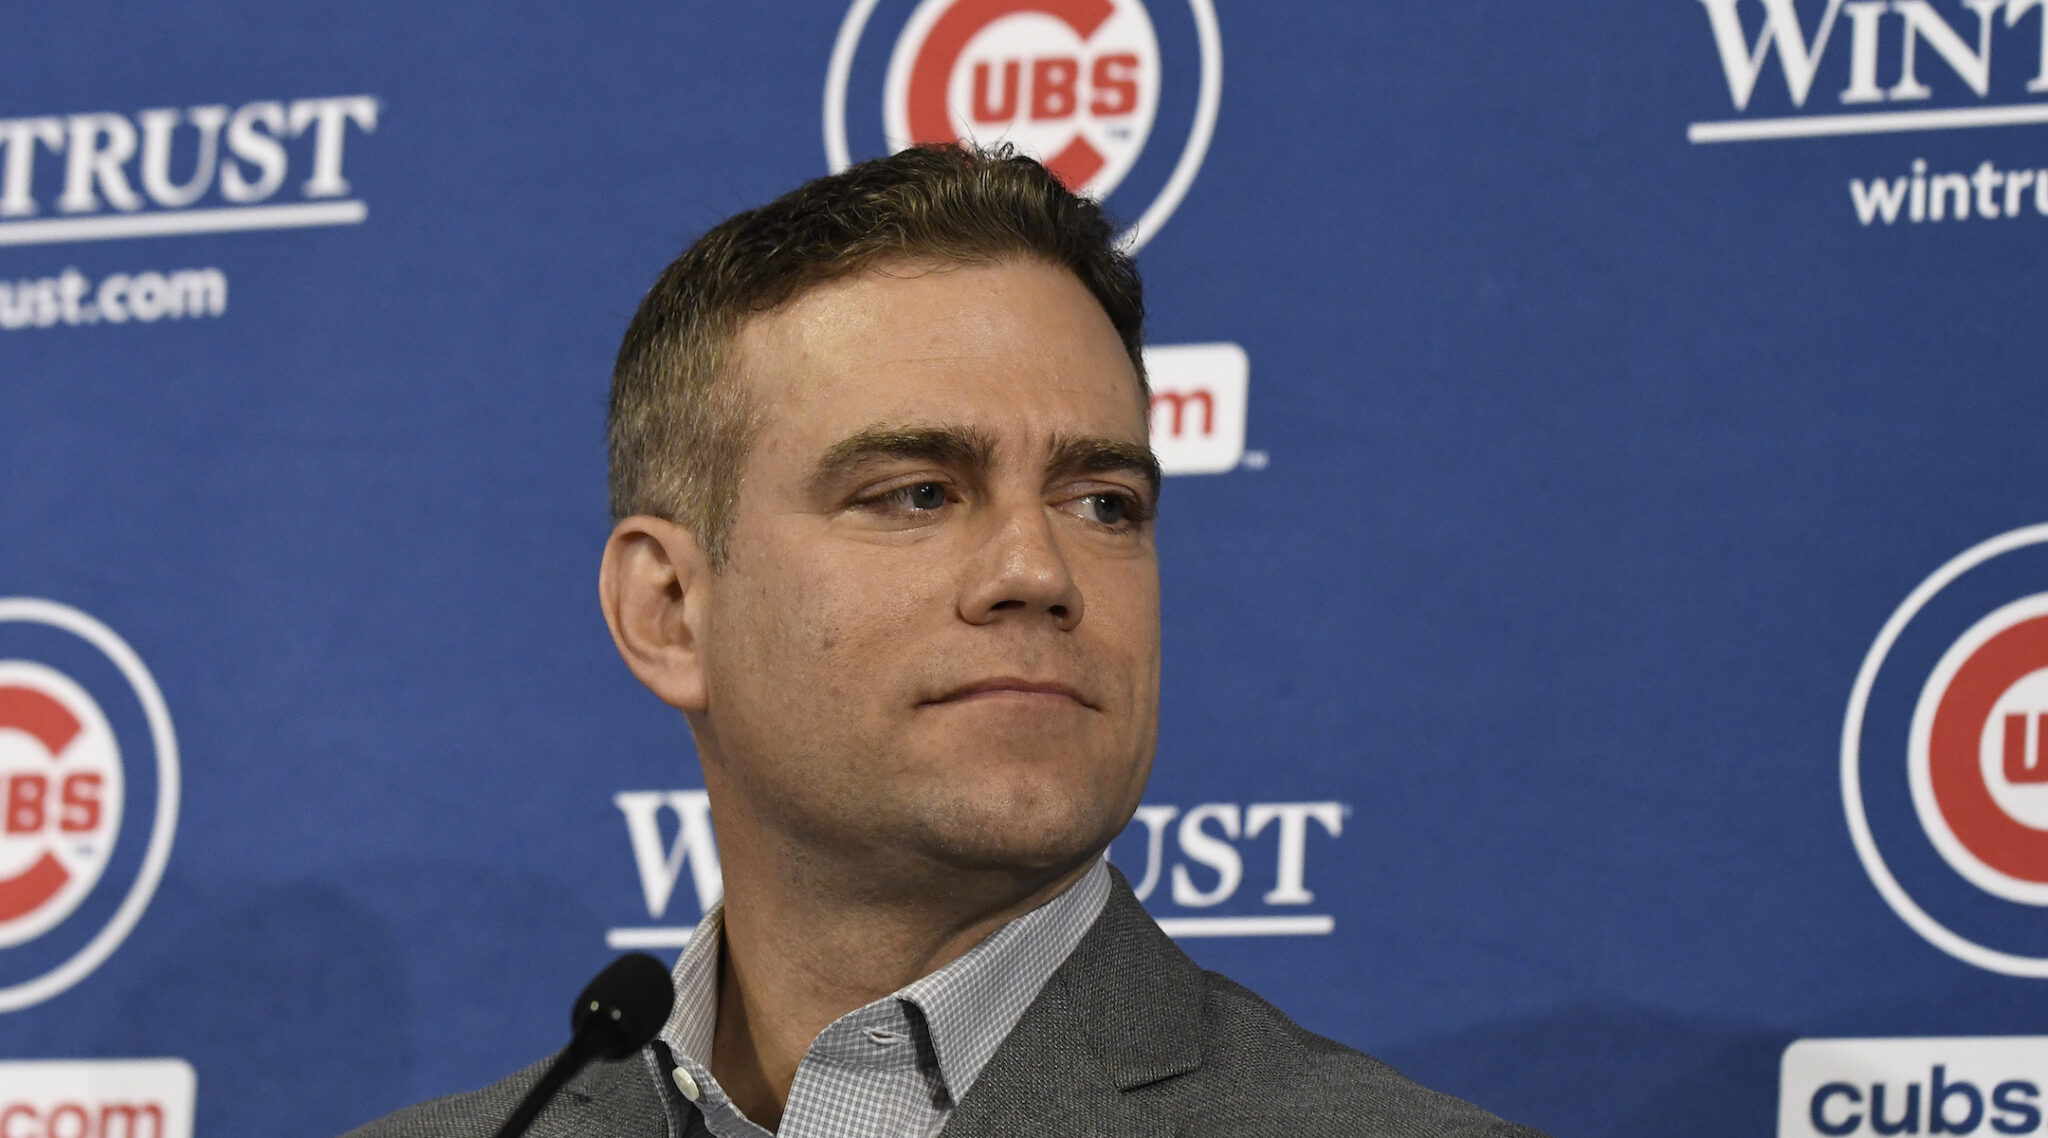 Chicago Cubs championship architect Theo Epstein steps down